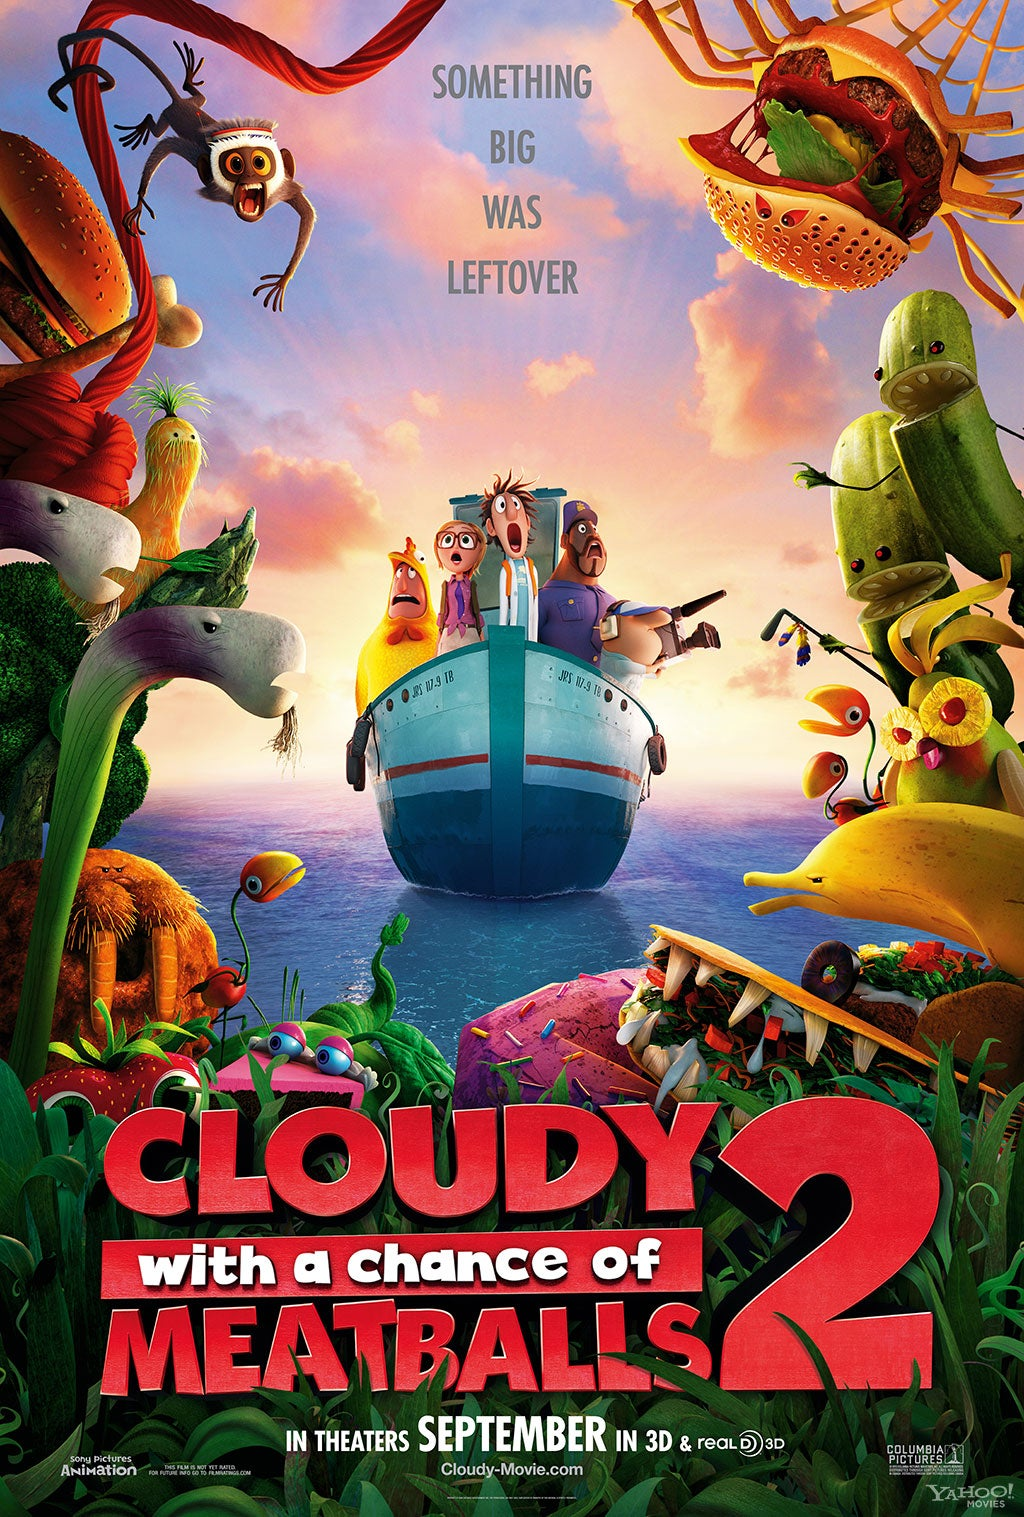 cloudy-with-a-chance-of-meatballs-2-poster - Last Movie You've Watched - Youtube Replay